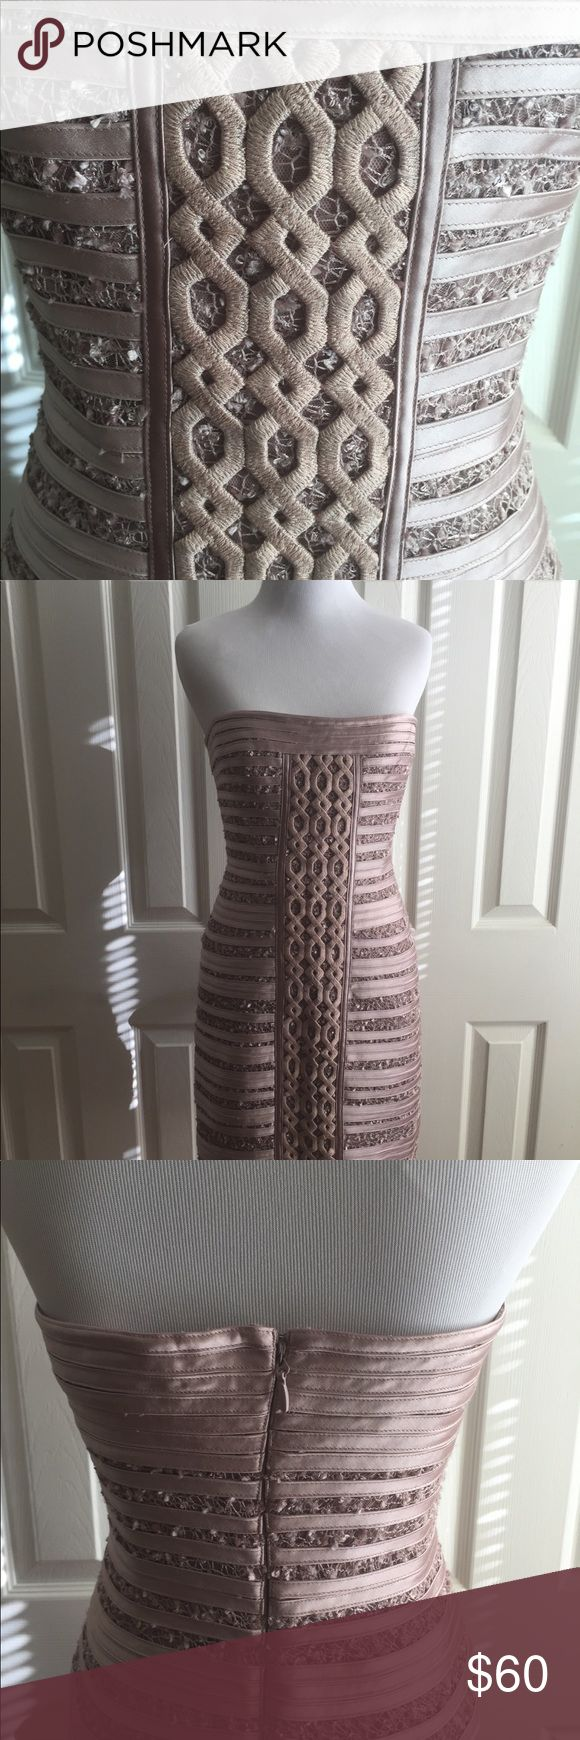 """BCBG MaxAzaria Cocktail Dress Beautiful cocktail dress BCBG MaxAzaria """"Moore"""" strapless Dress with center front detail. Stunning !! 100% polyester. Exceptional detail dress in mauve rose. Thin ribbon like bandage lace-overlay dress. BCBGMaxAzria Dresses Midi"""